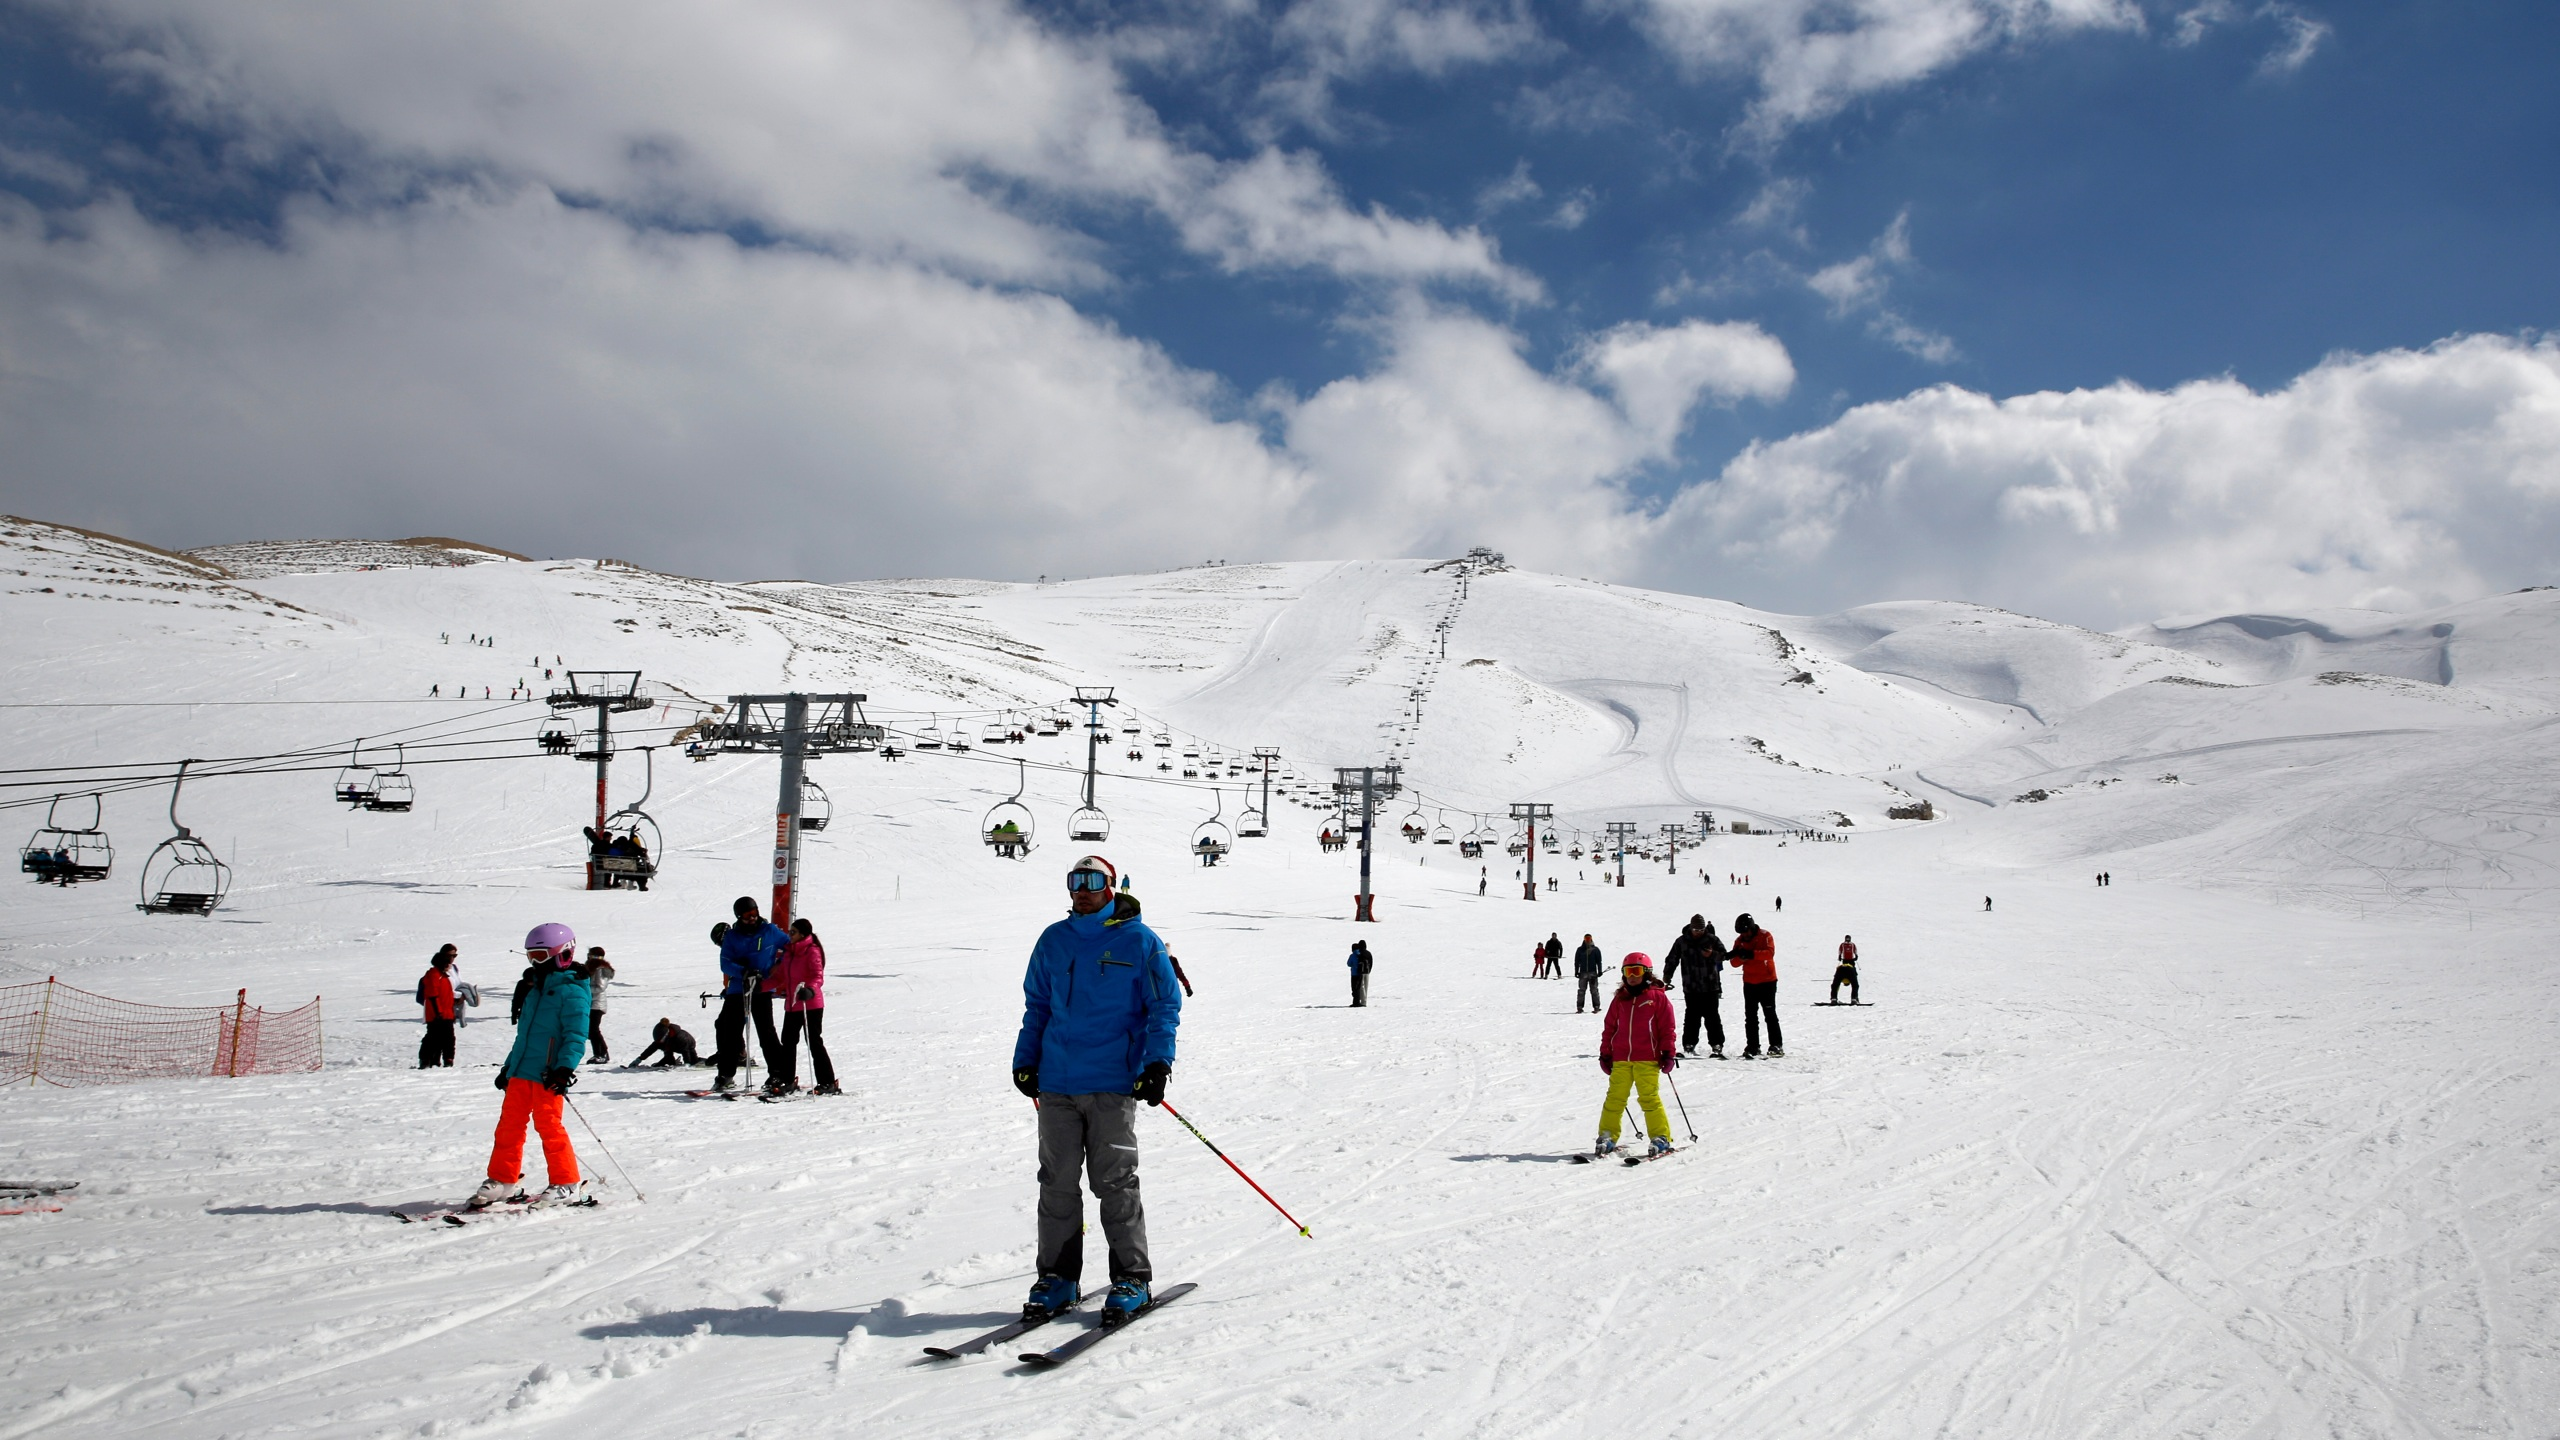 In this Feb. 22, 2019, file photo, people ride lifts as other skiers slide down the hill on a sunny day at the Faraya-Mzaar ski resort, in Faraya, northeast of Beirut, Lebanon. (Bilal Hussein / Associated Press)